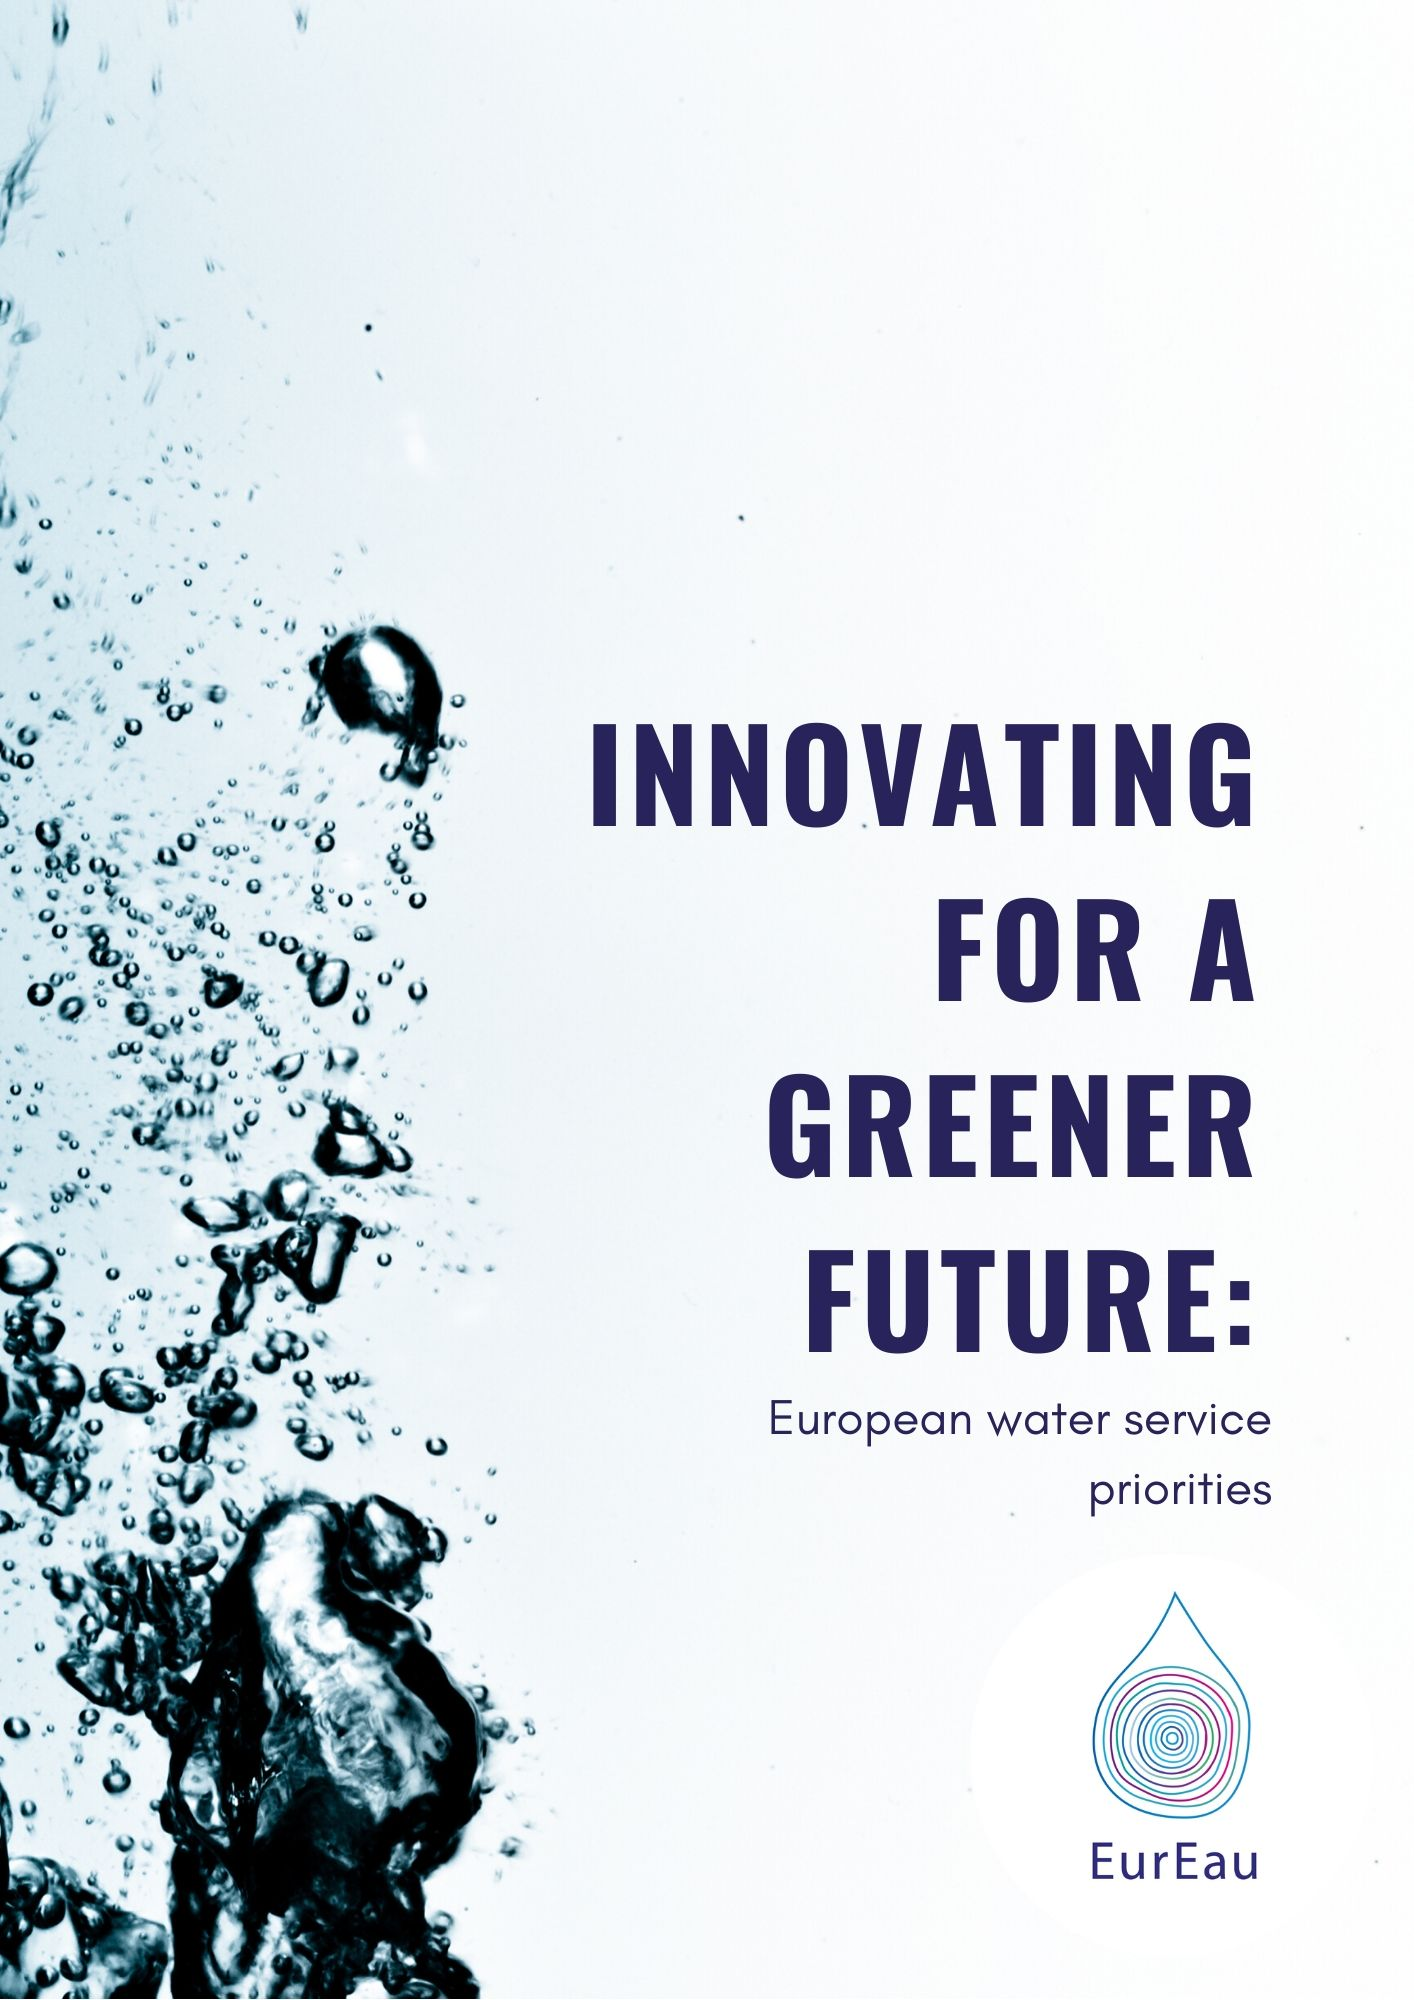 Innovating for a greener future: European water service priorities